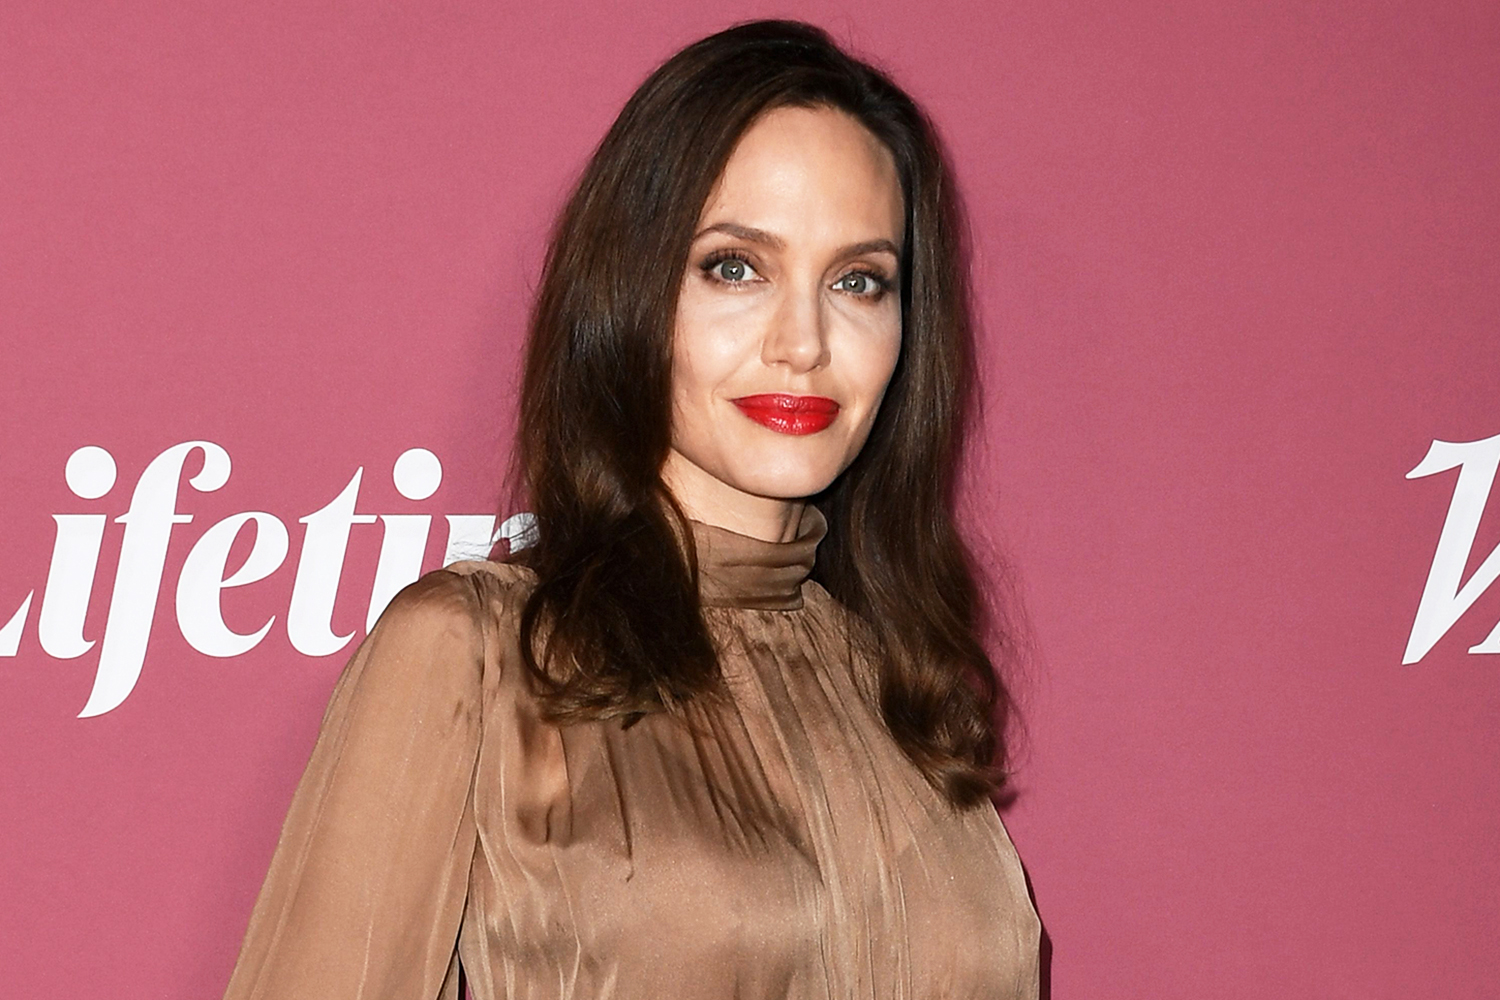 Angelina Jolie attends Variety's Power Of Women at Wallis Annenberg Center for the Performing Arts on September 30, 2021 in Beverly Hills, California.